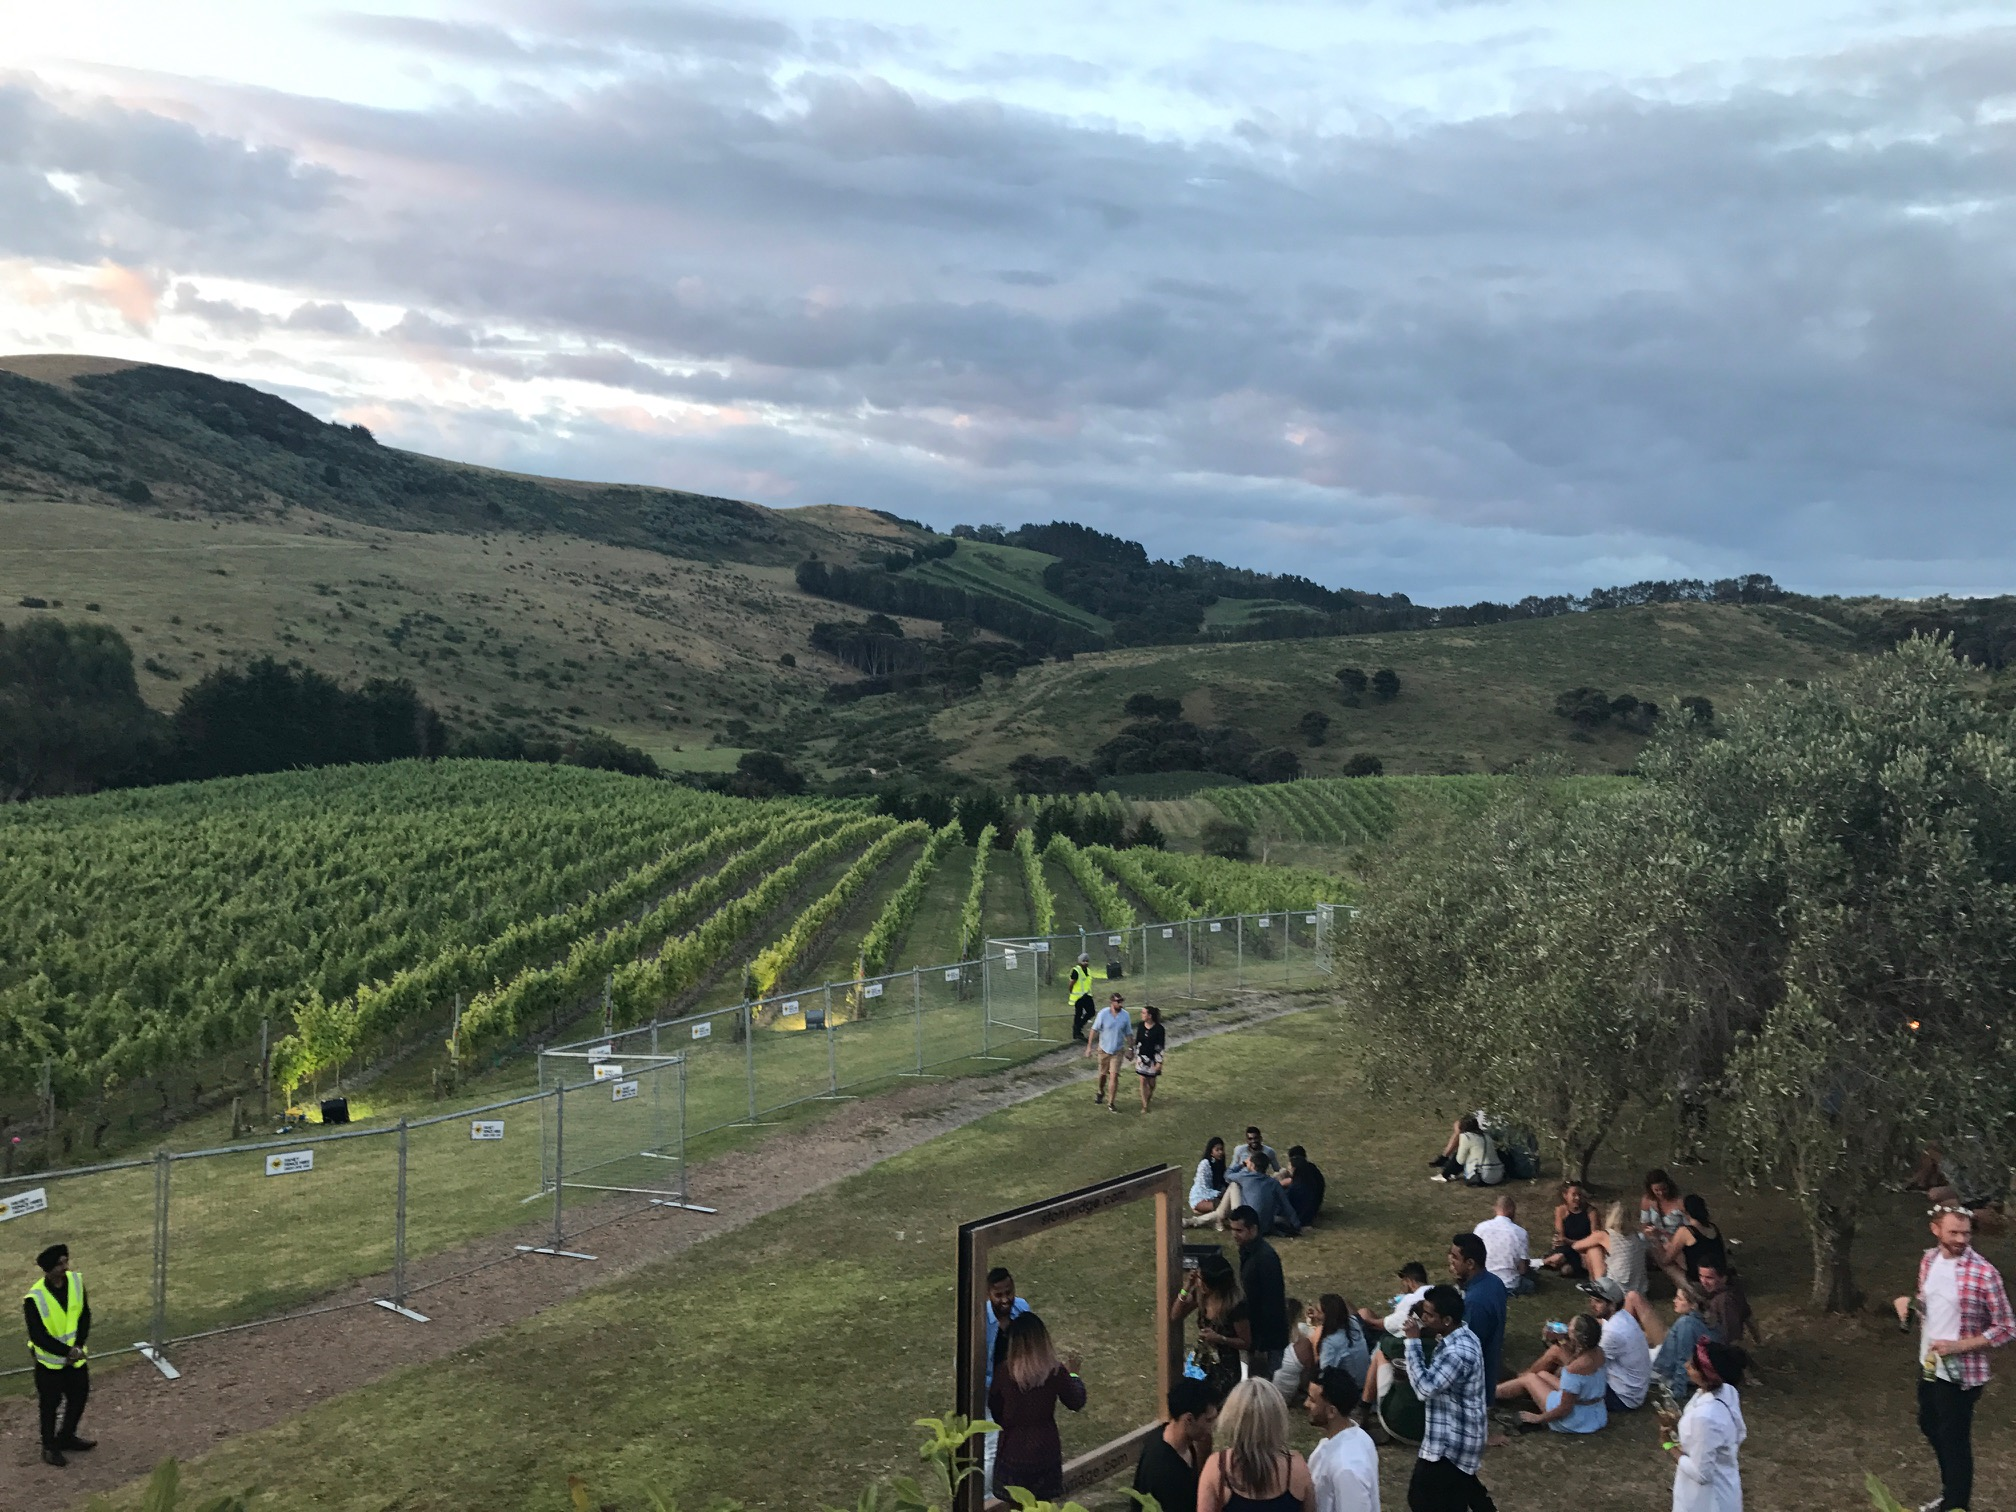 Highlife Festival on Stonyridge Vineyard on Waiheke Island